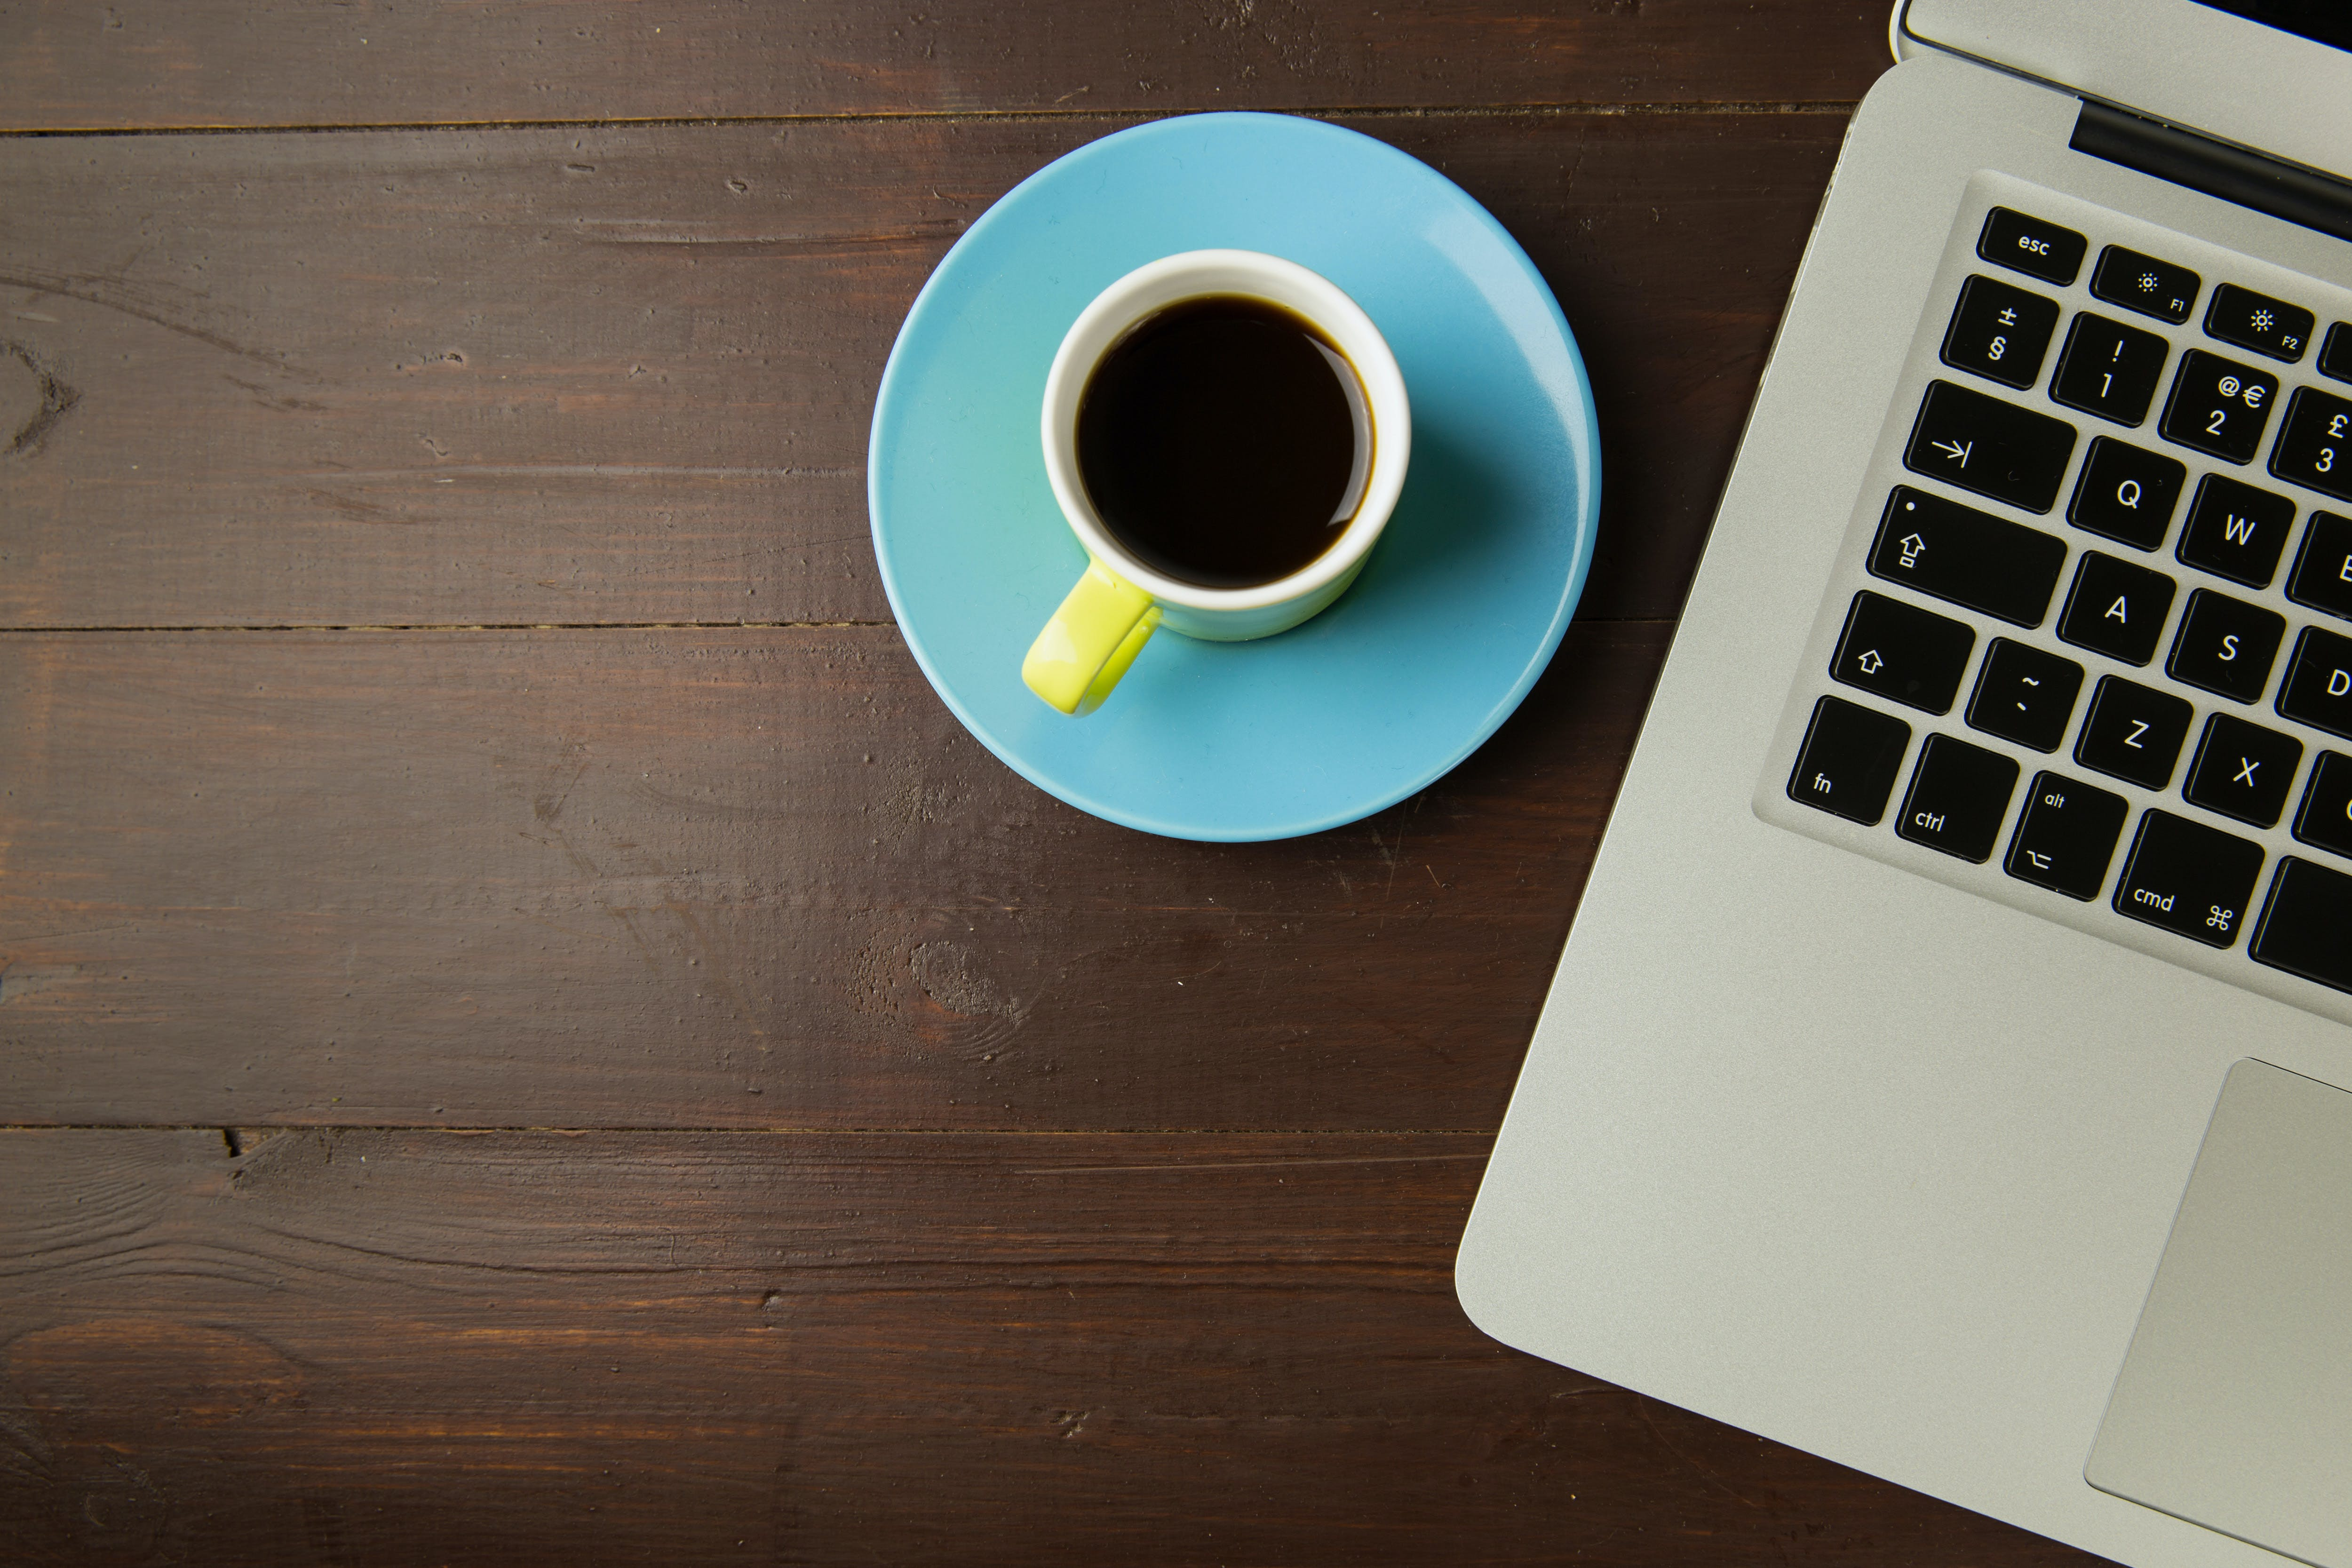 White Ceramic Mug Filled With Coffee Beside the Laptop Computer